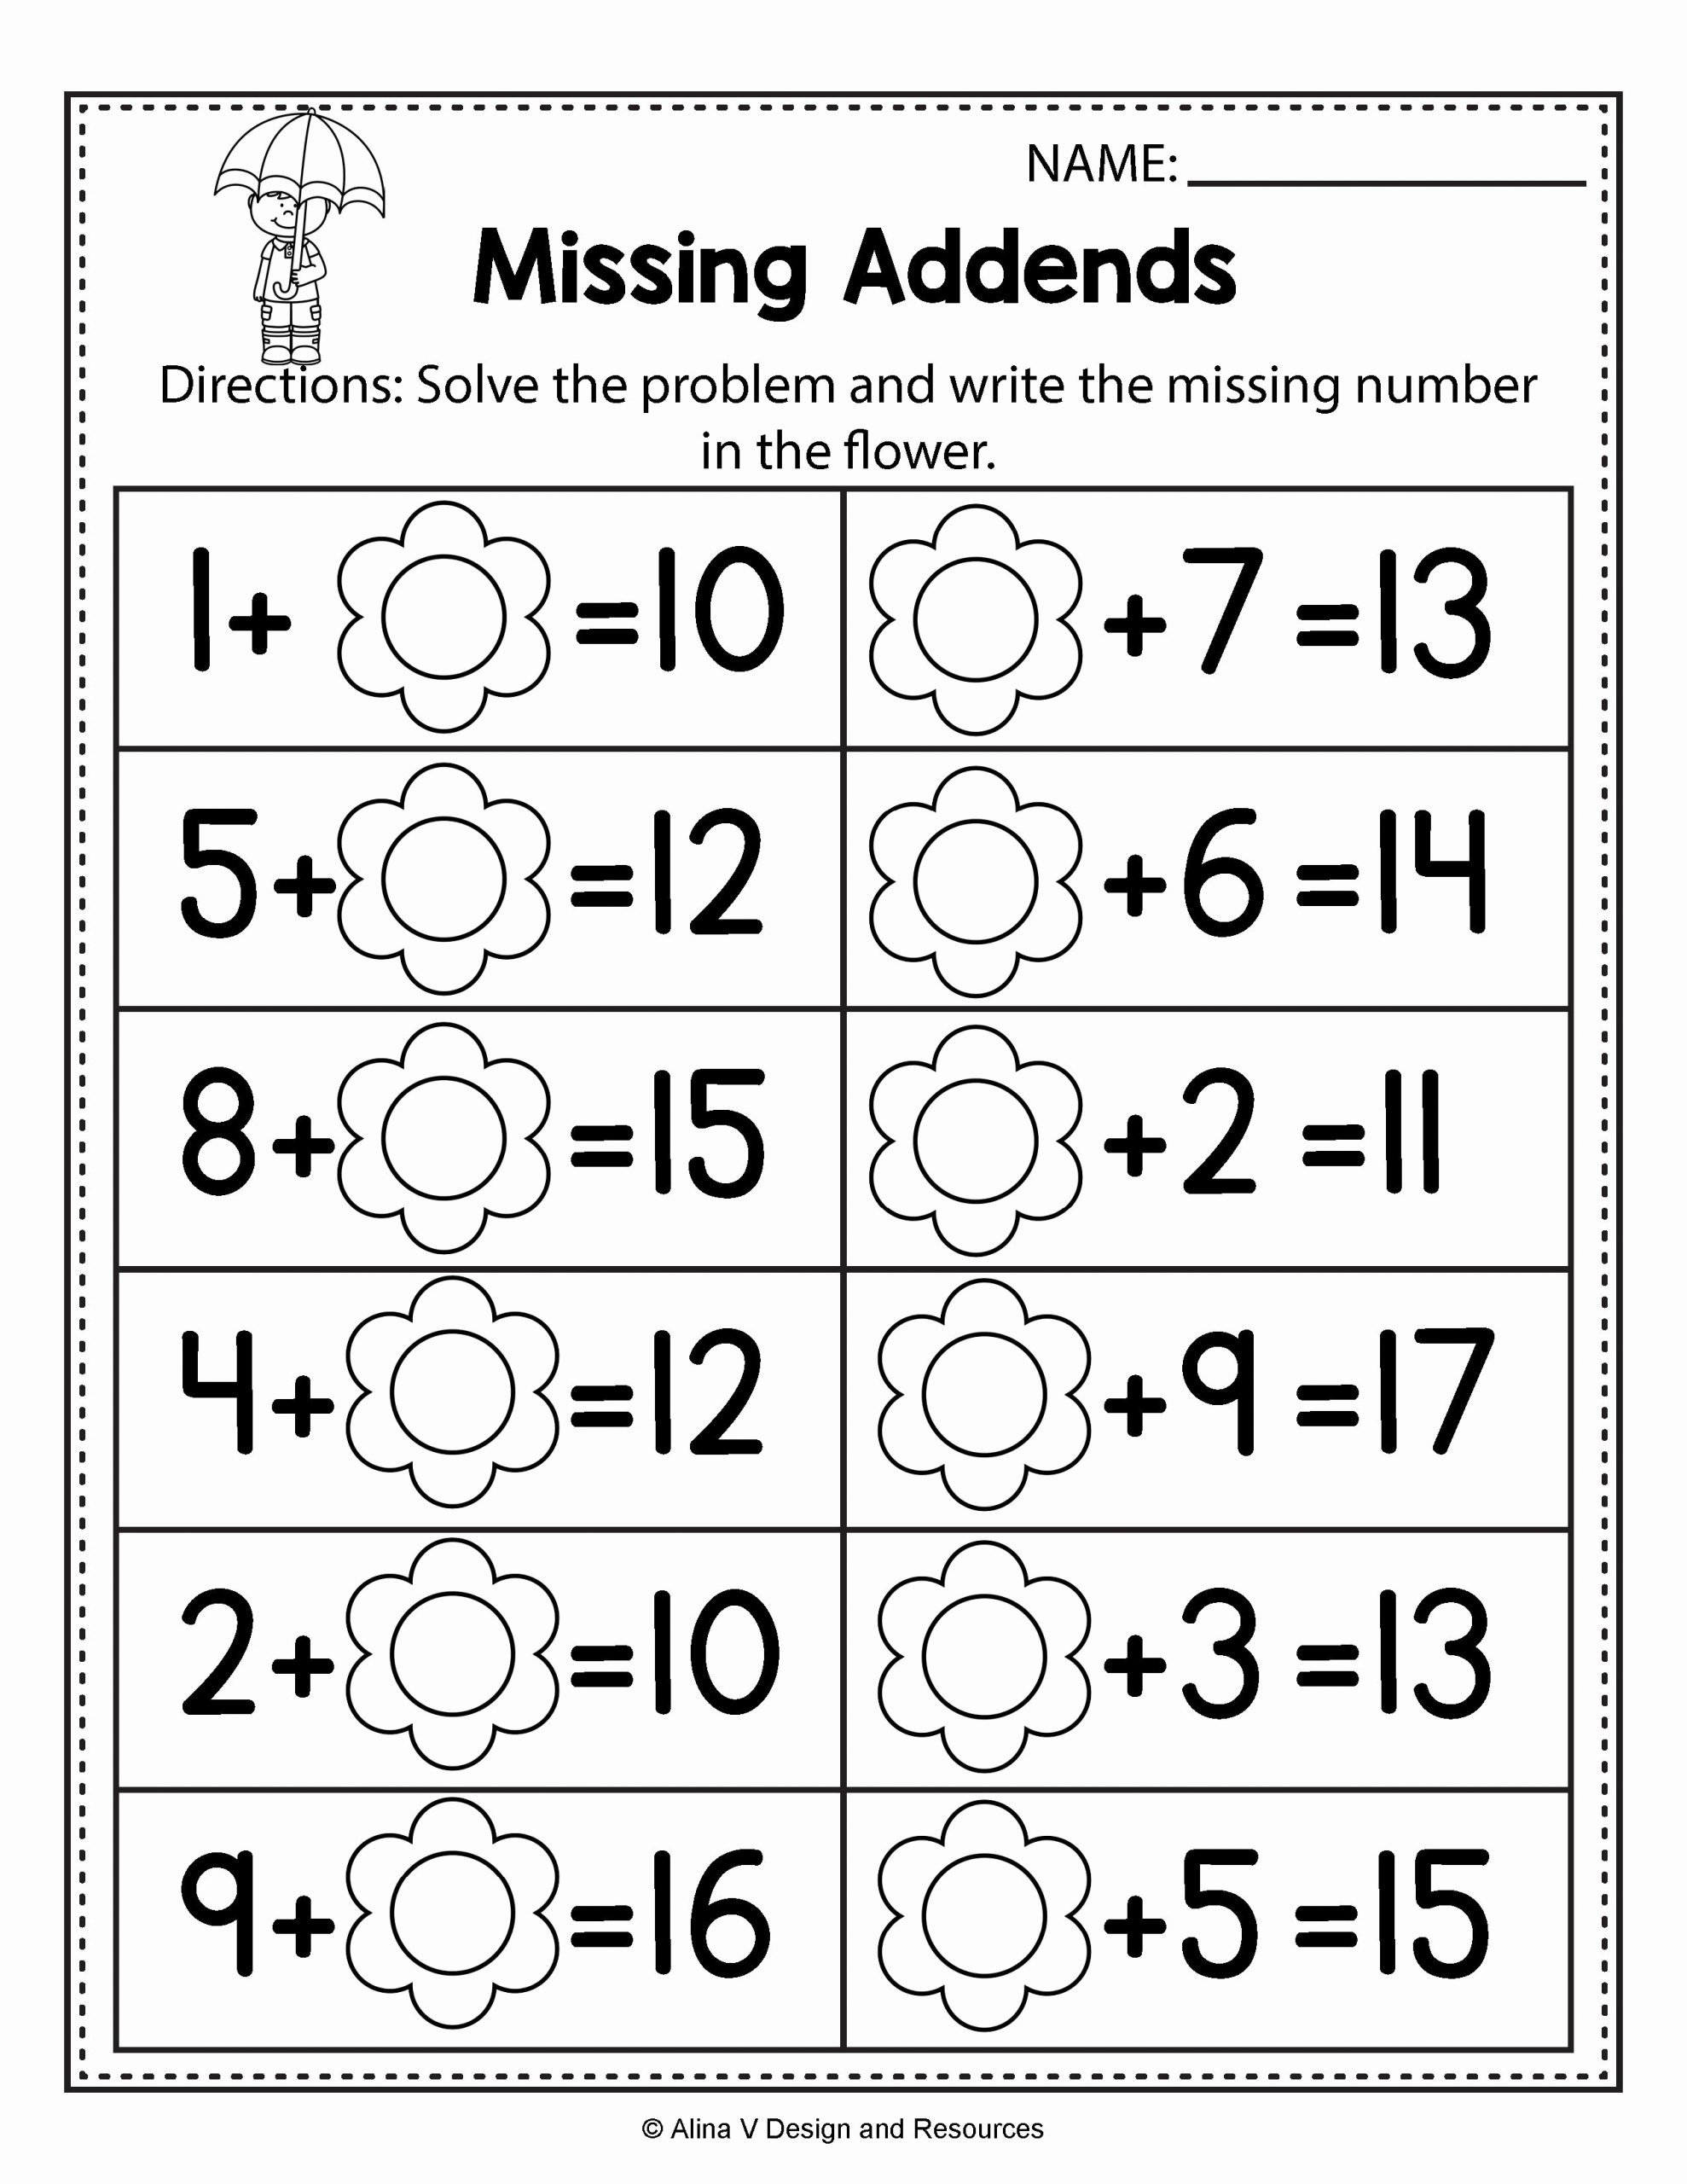 Missing Addend Worksheets First Grade New First Grade Missing Addend Worksheets Refrence Unique Free